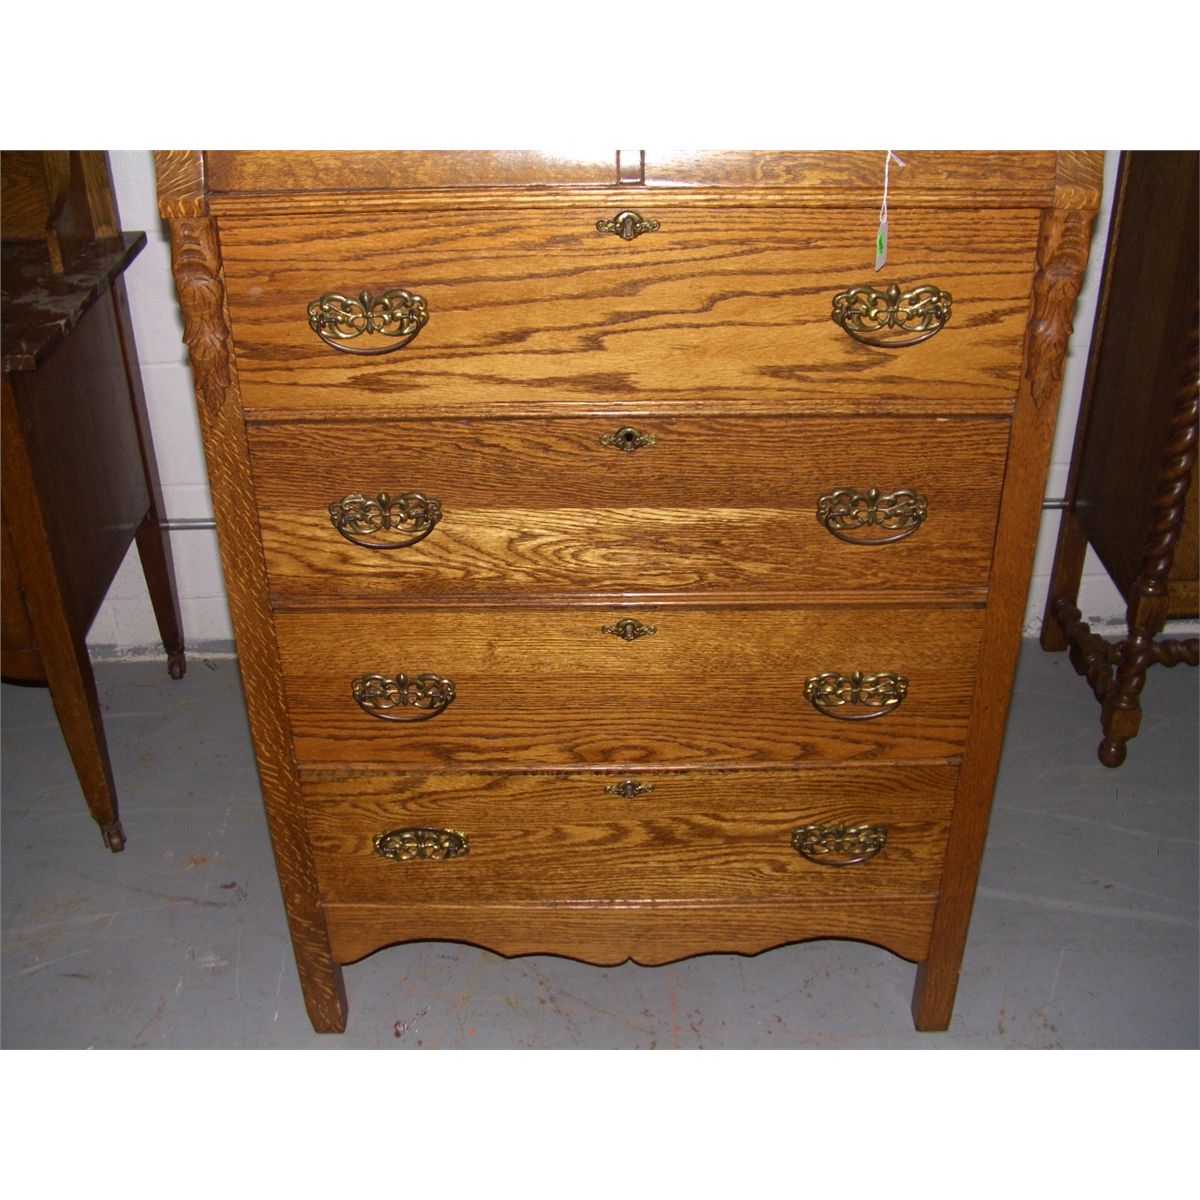 Antique Oak Highboy Dresser Bestdressers 2019